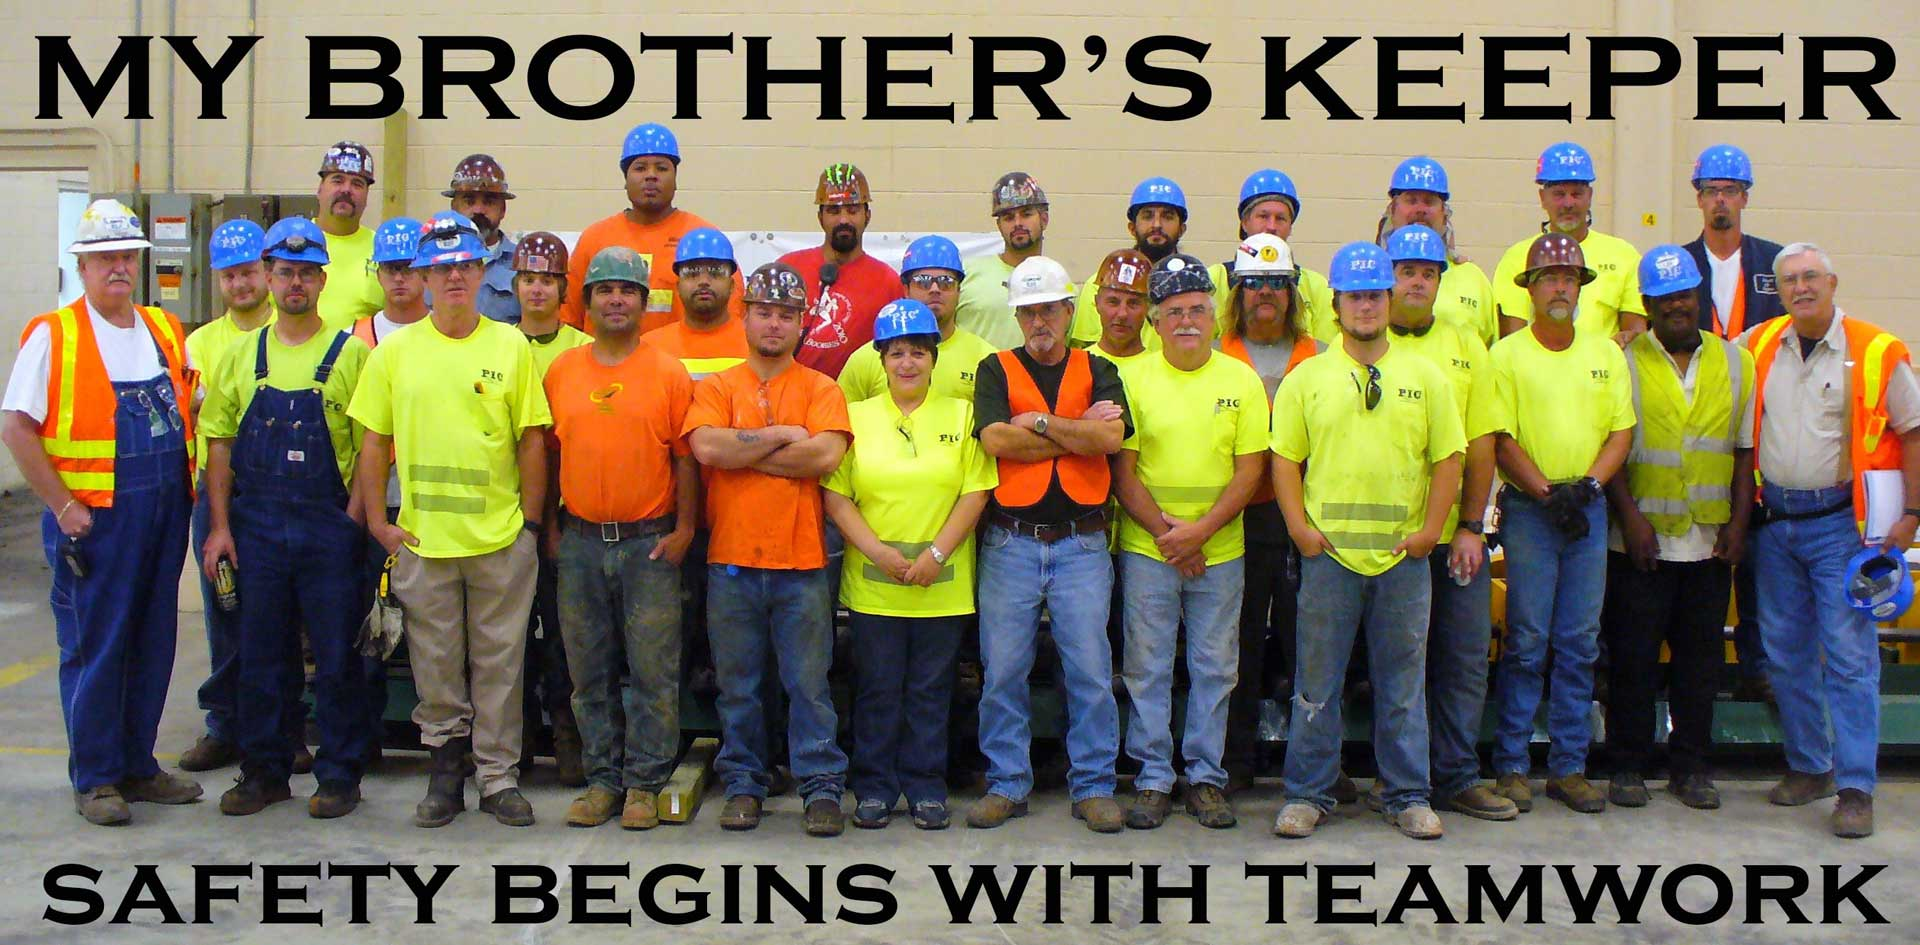 """Picture of the PIC employees standing in a line, with words above and below saying """"My brother's keeper: safety begins with teamwork"""""""